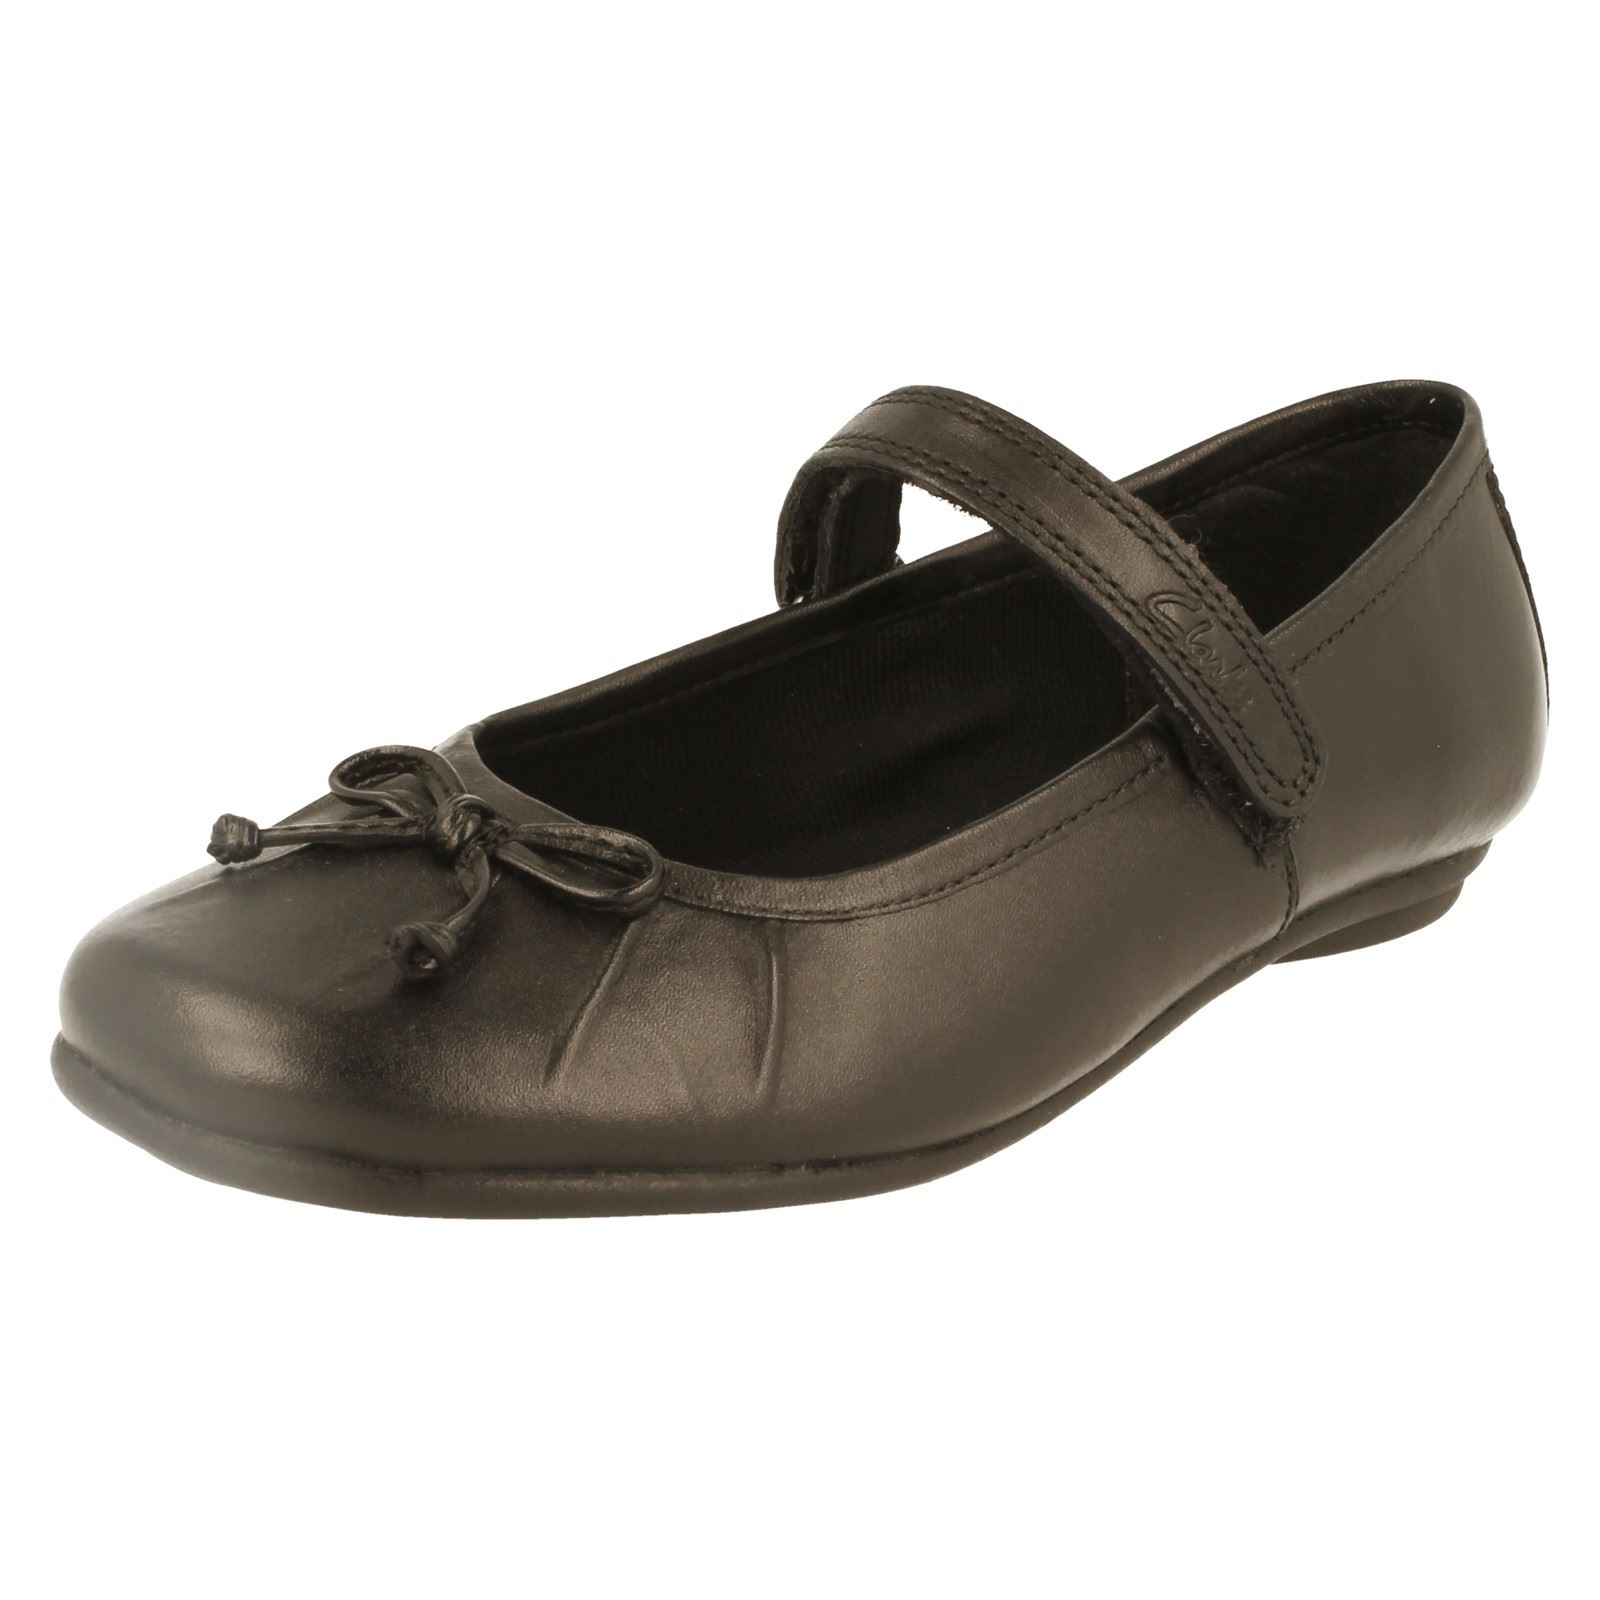 Chicas Clarks school/formal Zapatos Estilo-Tasha aliado